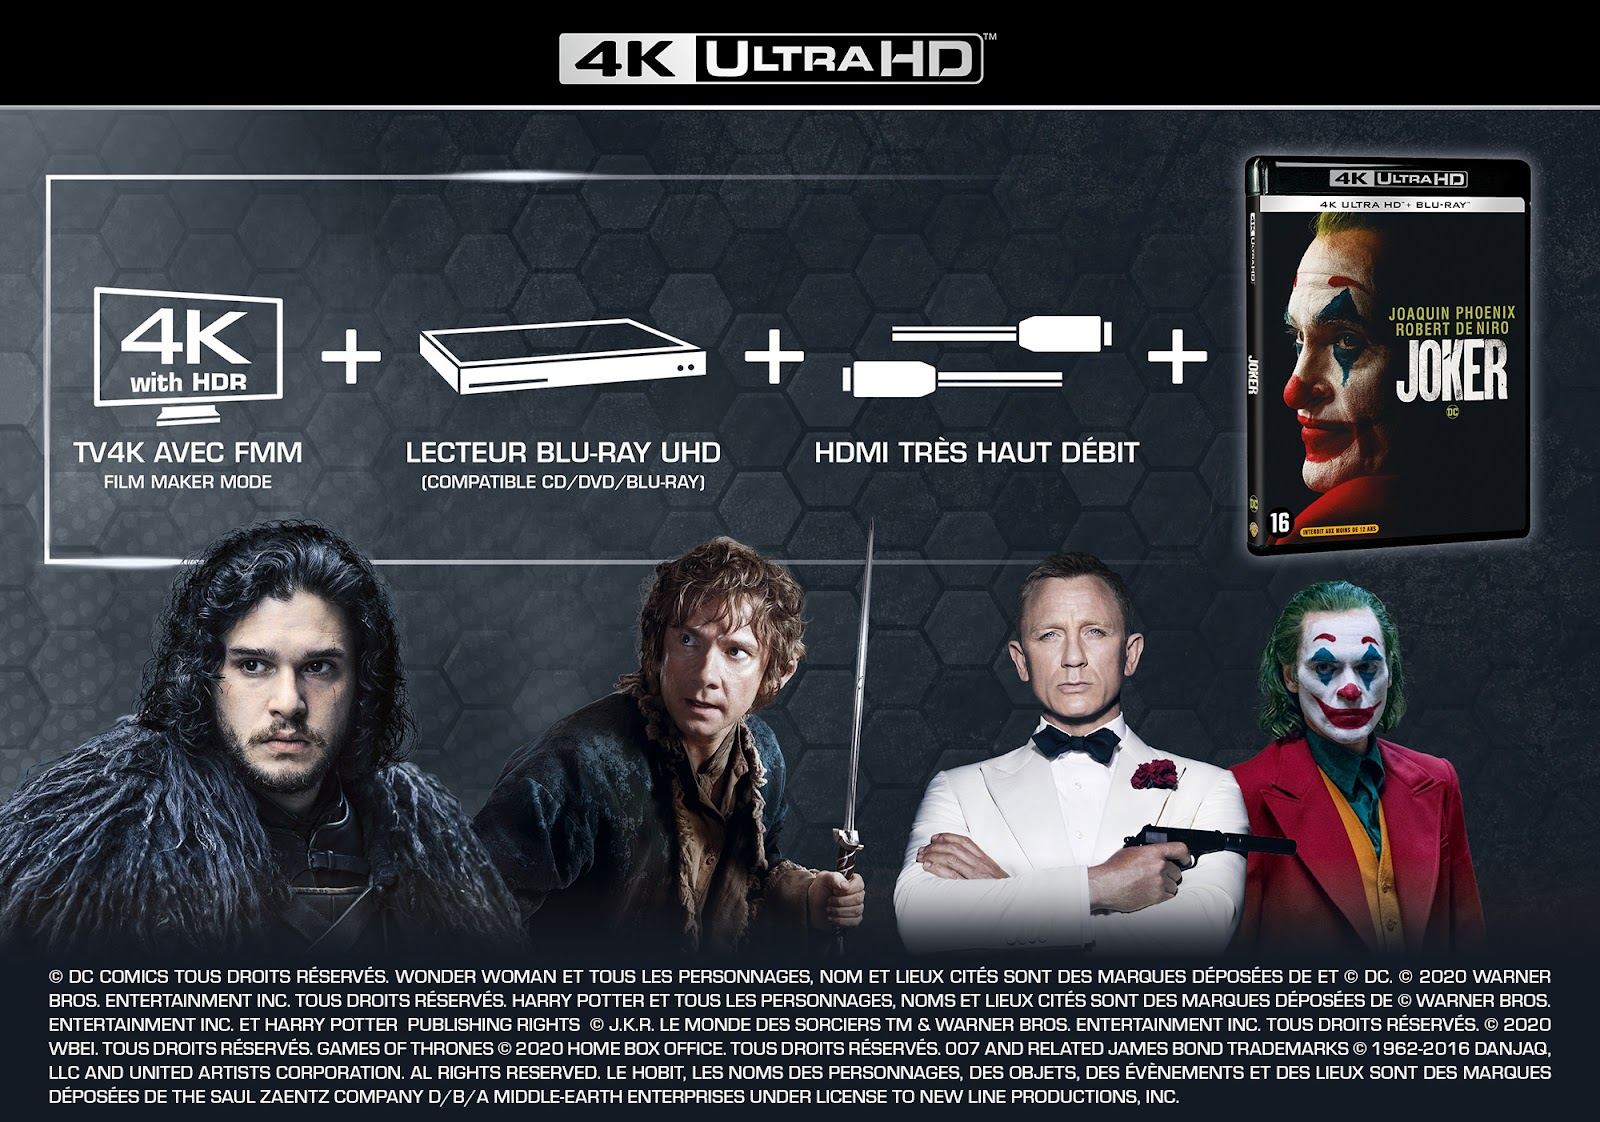 4K UHD TV + 4K Ultra HD Blu-ray + very high speed HDMI cable = the winning combination to enjoy 4K image quality in the best conditions!